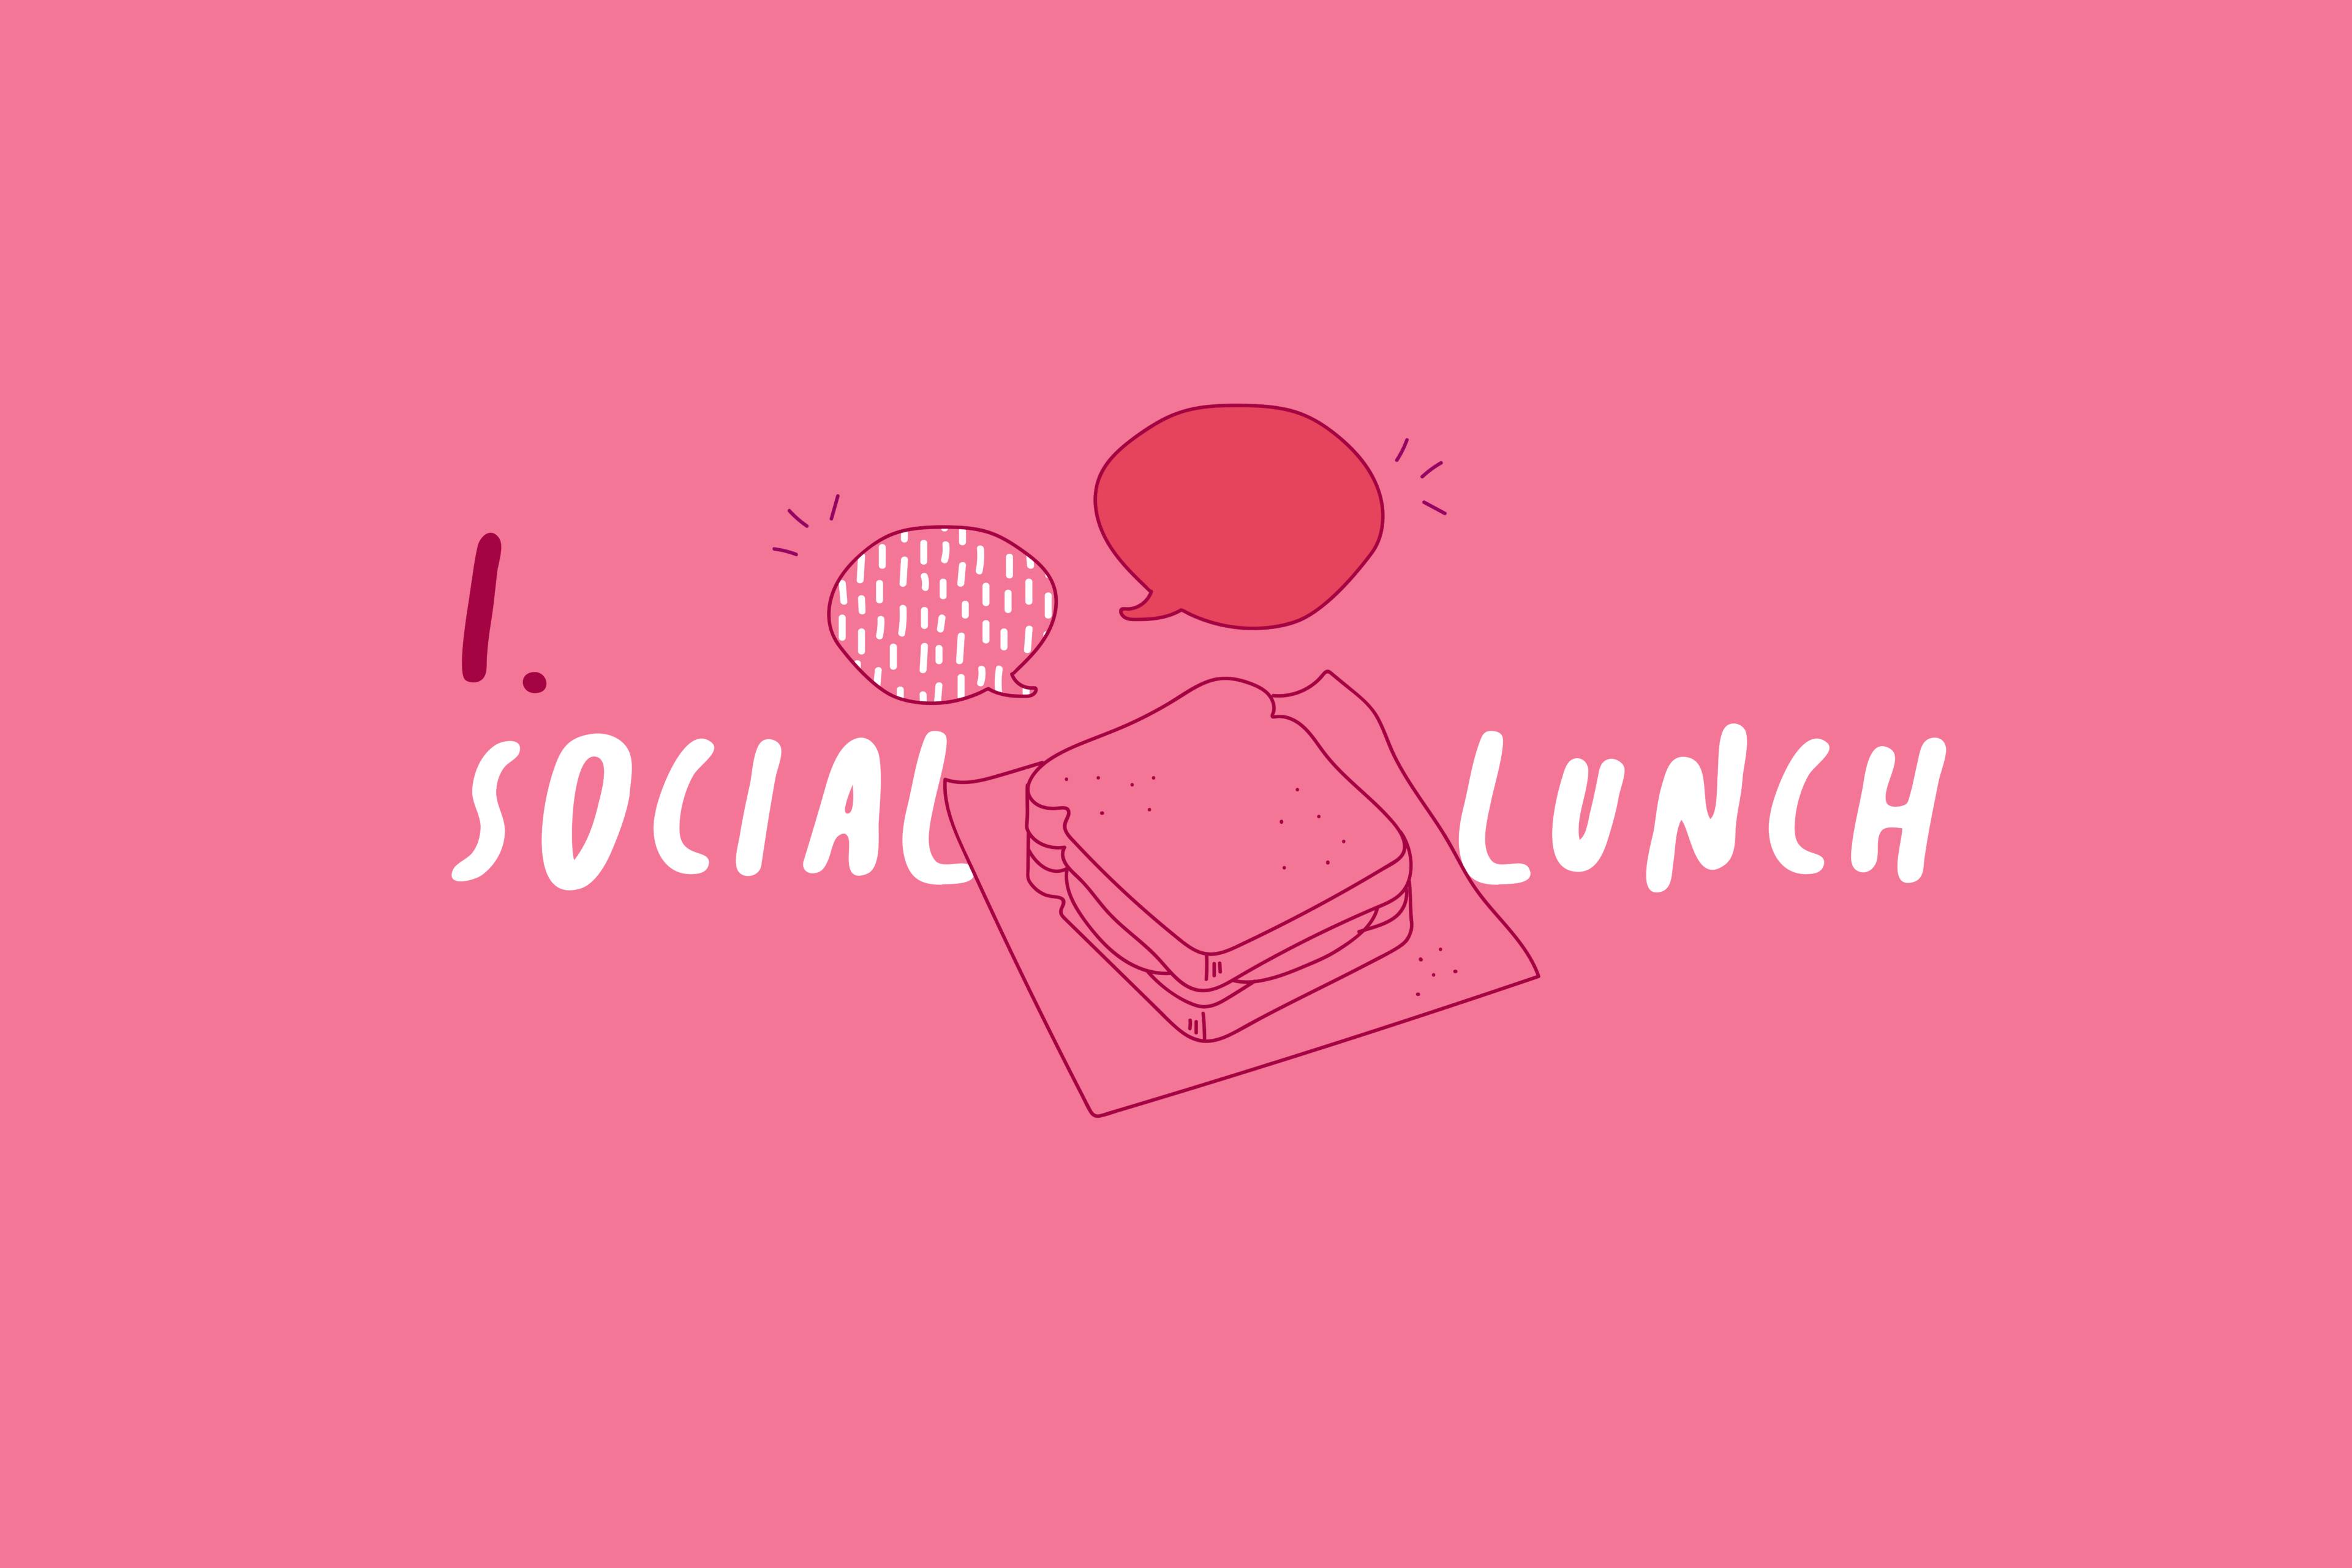 Wintermonate_Tipps_Mittagessen_Social_Lunch_Illustration